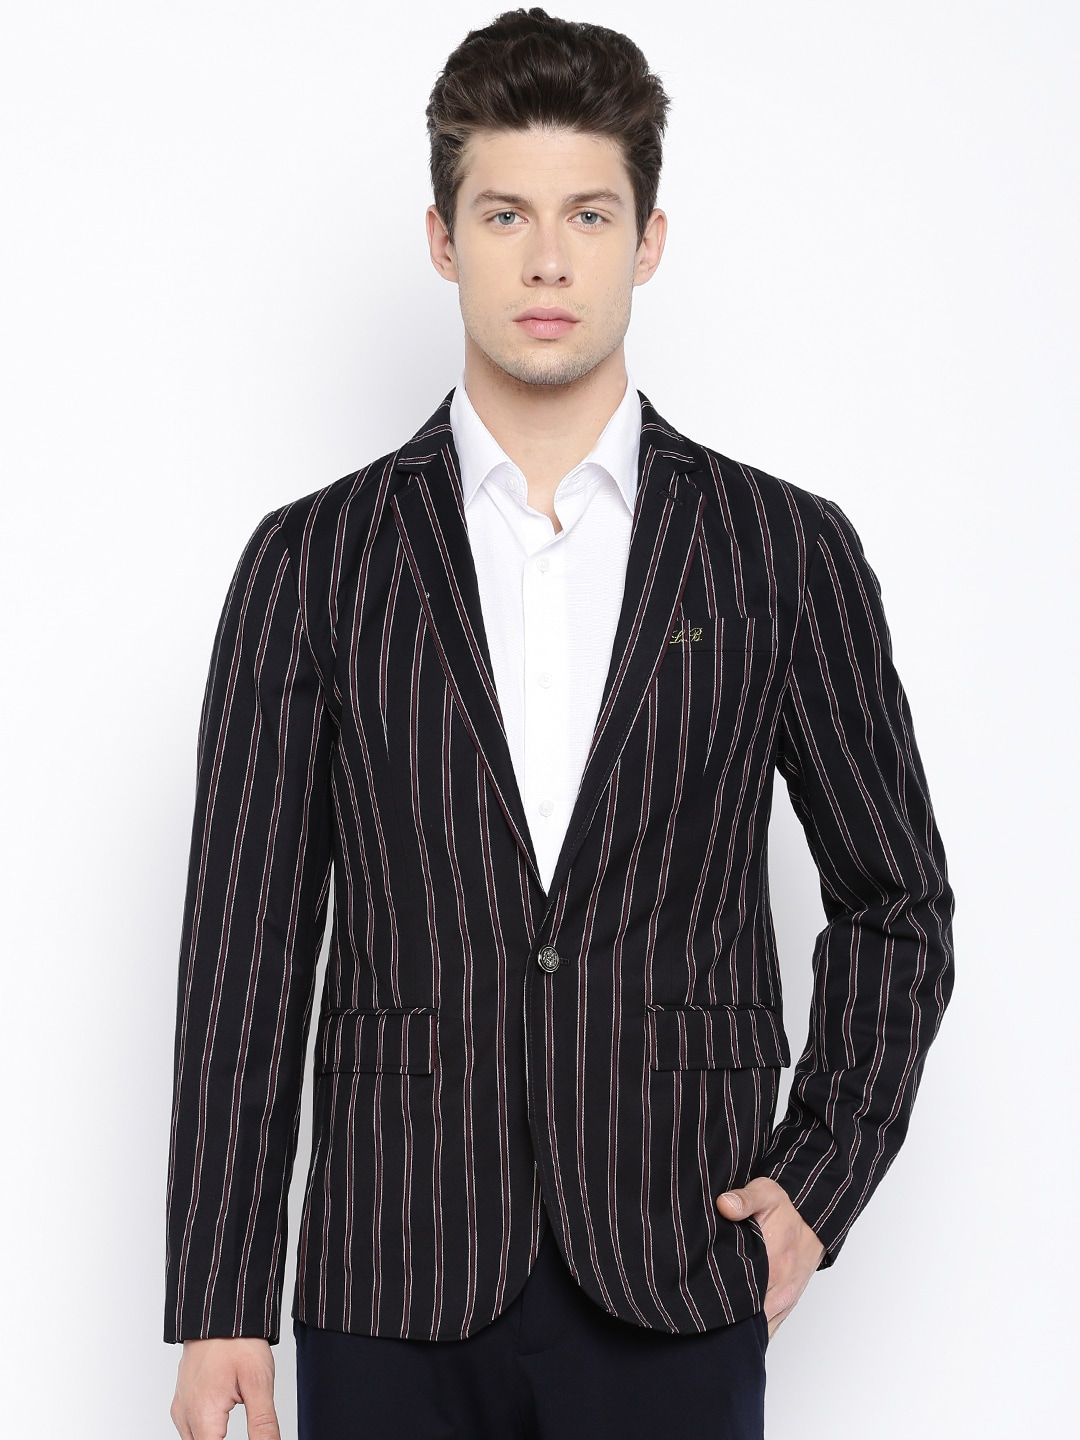 To acquire Stylish mens blazers online pictures trends